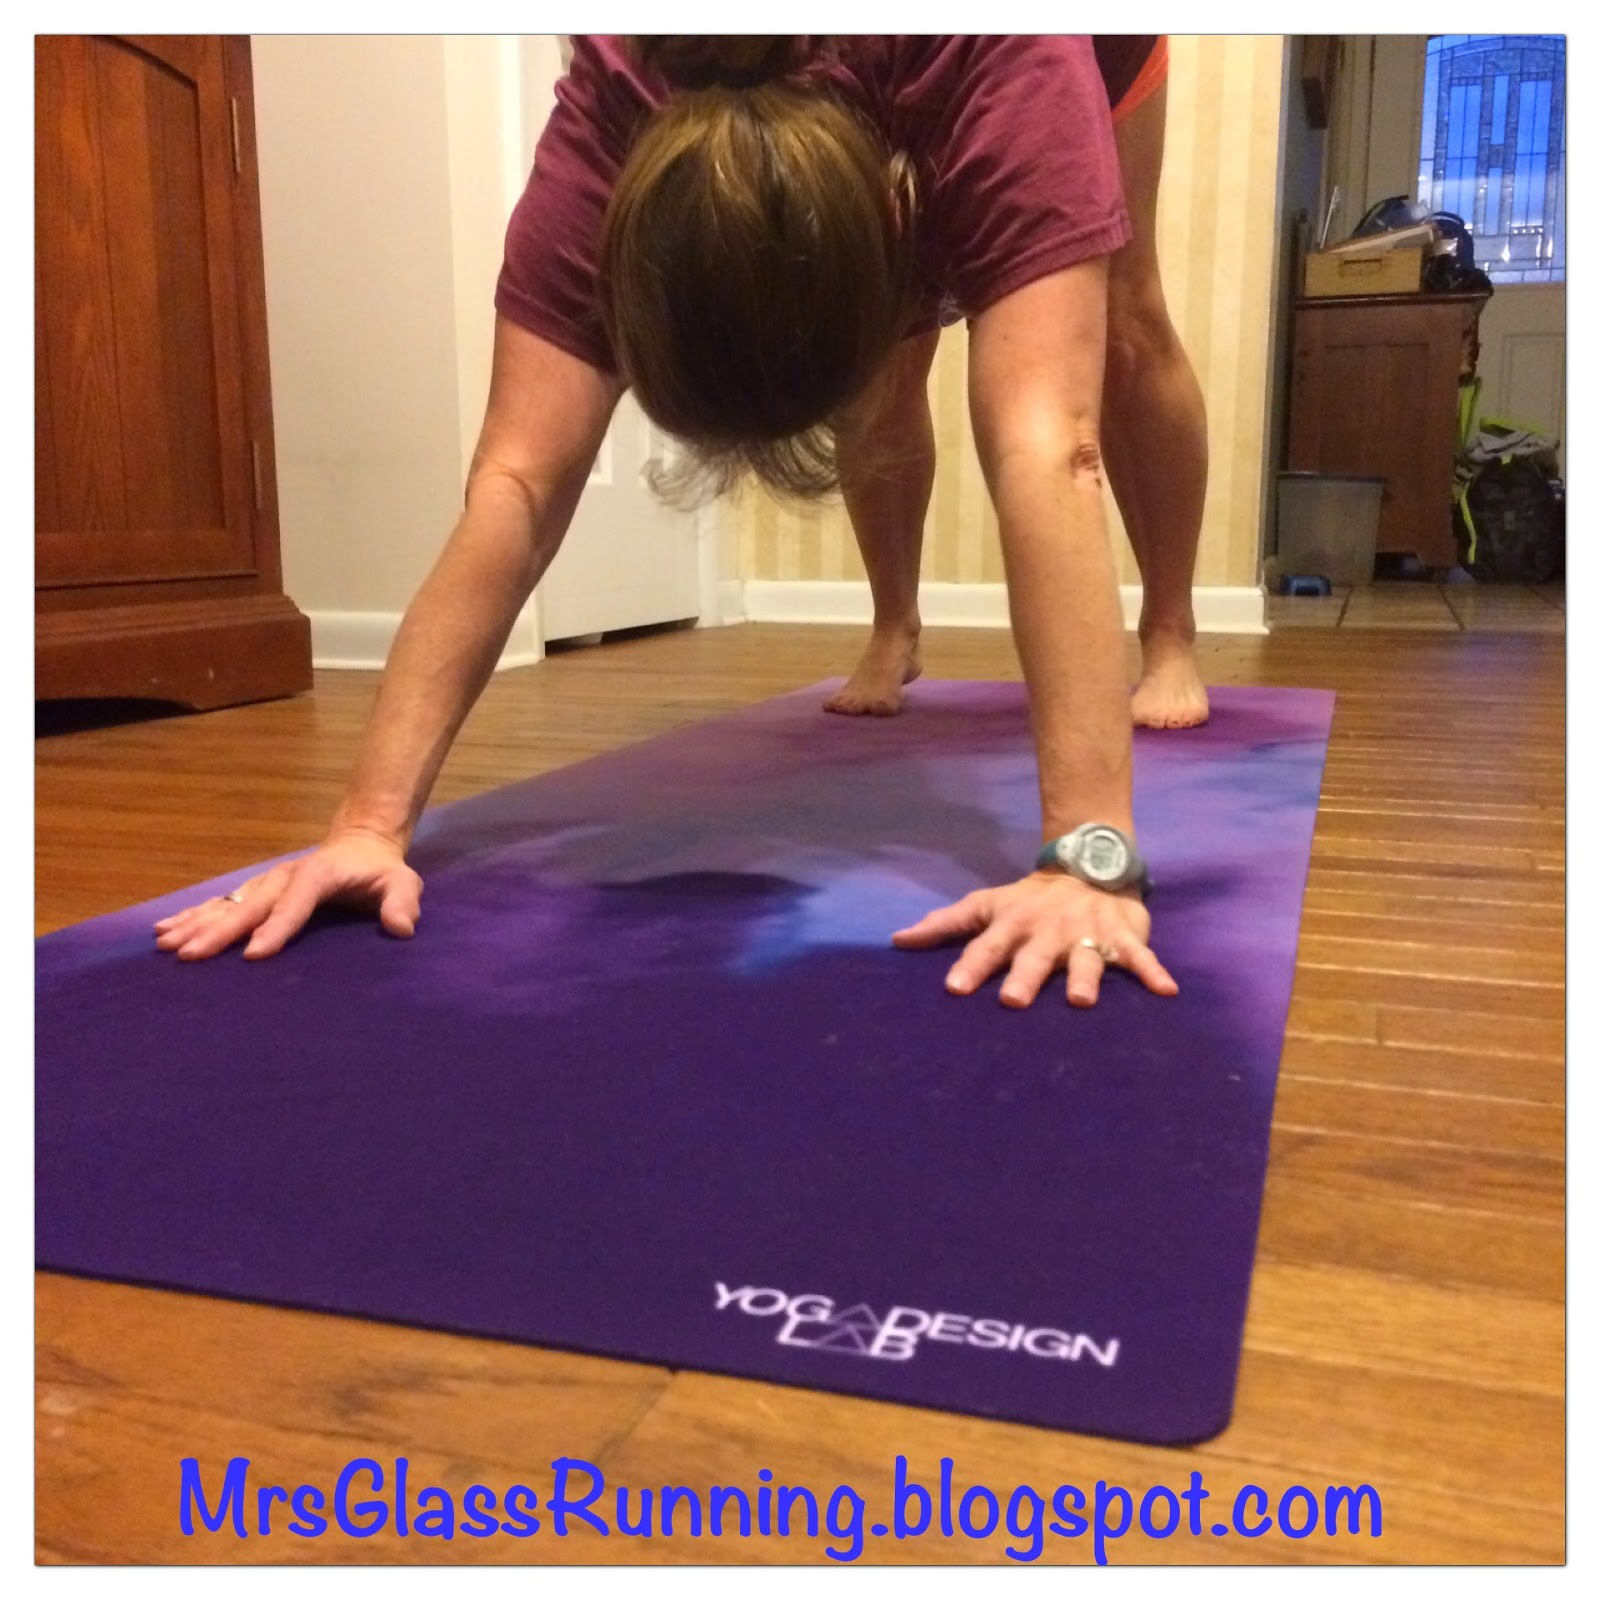 Fitlifestyleco Yoga Mat Towel Combo: Yoga Design Lab Combo Mat Review